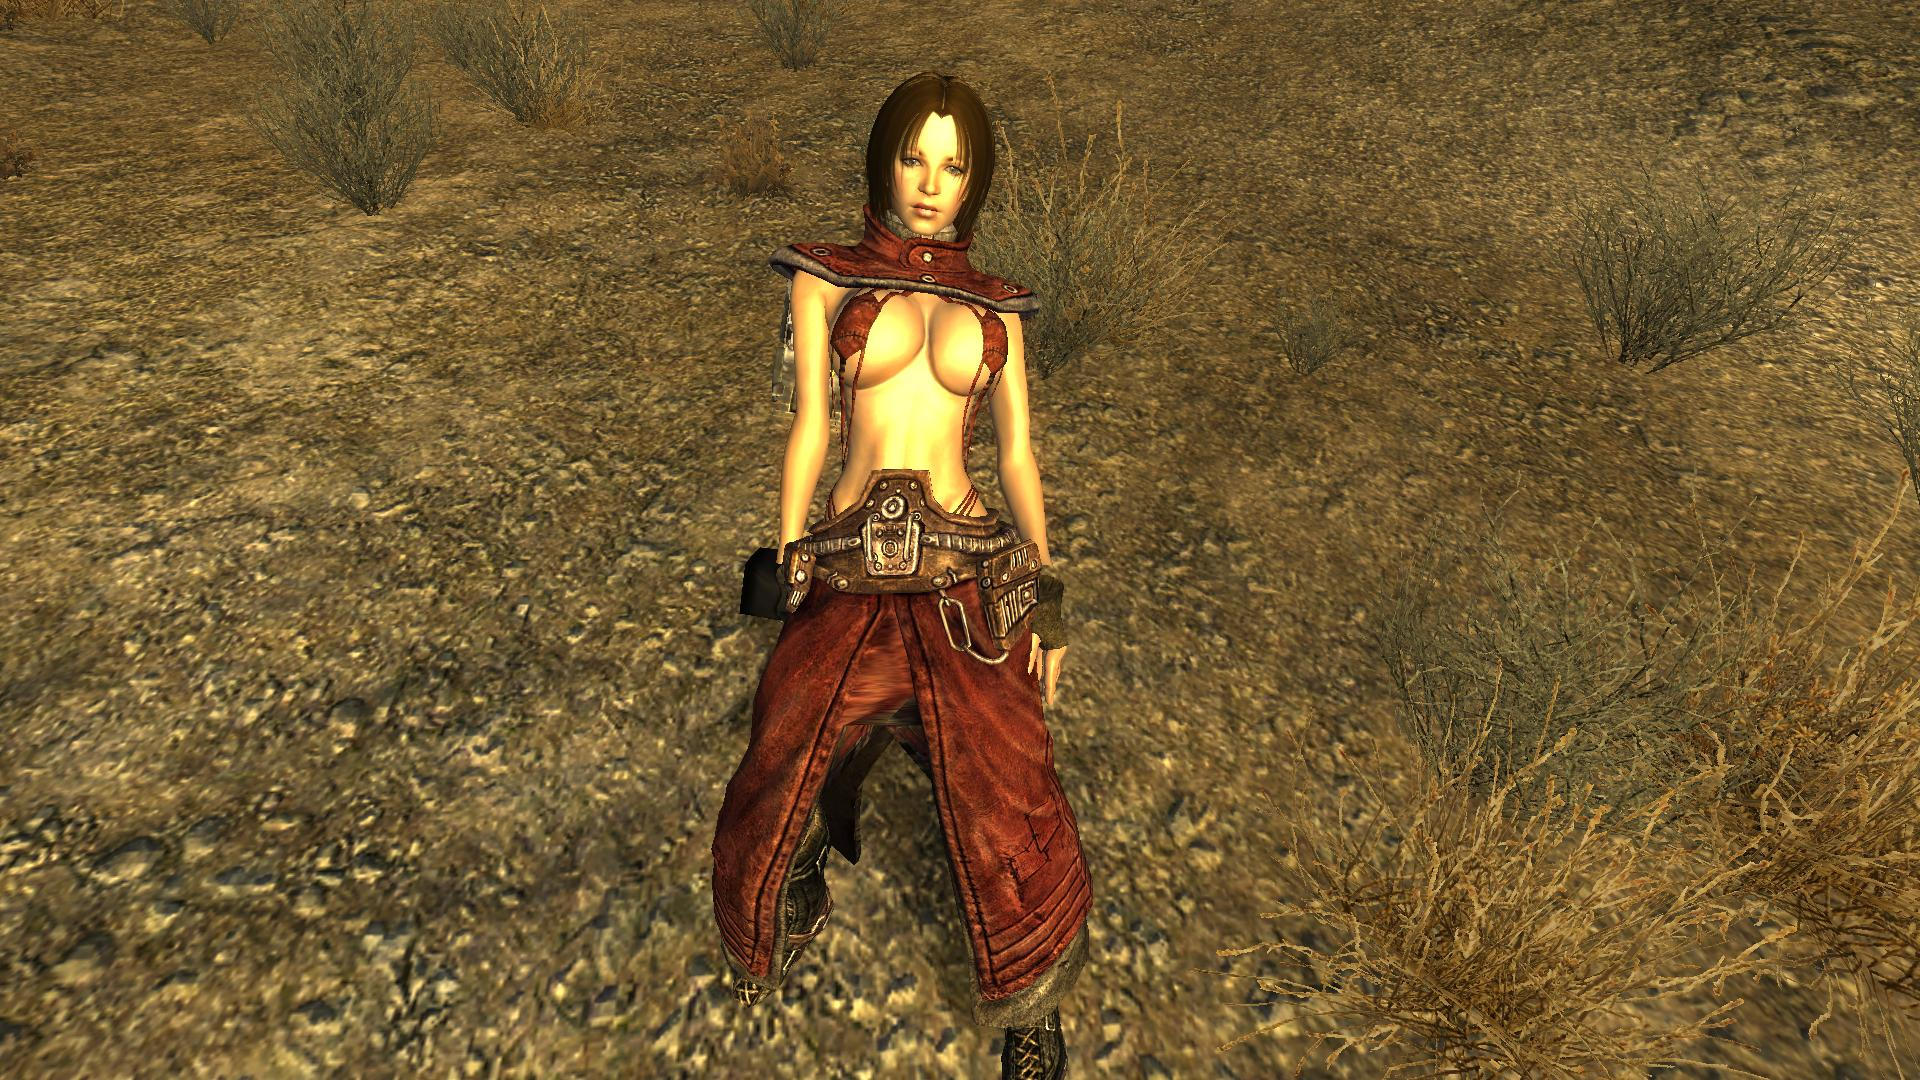 Free fallout new vegas porn sex images